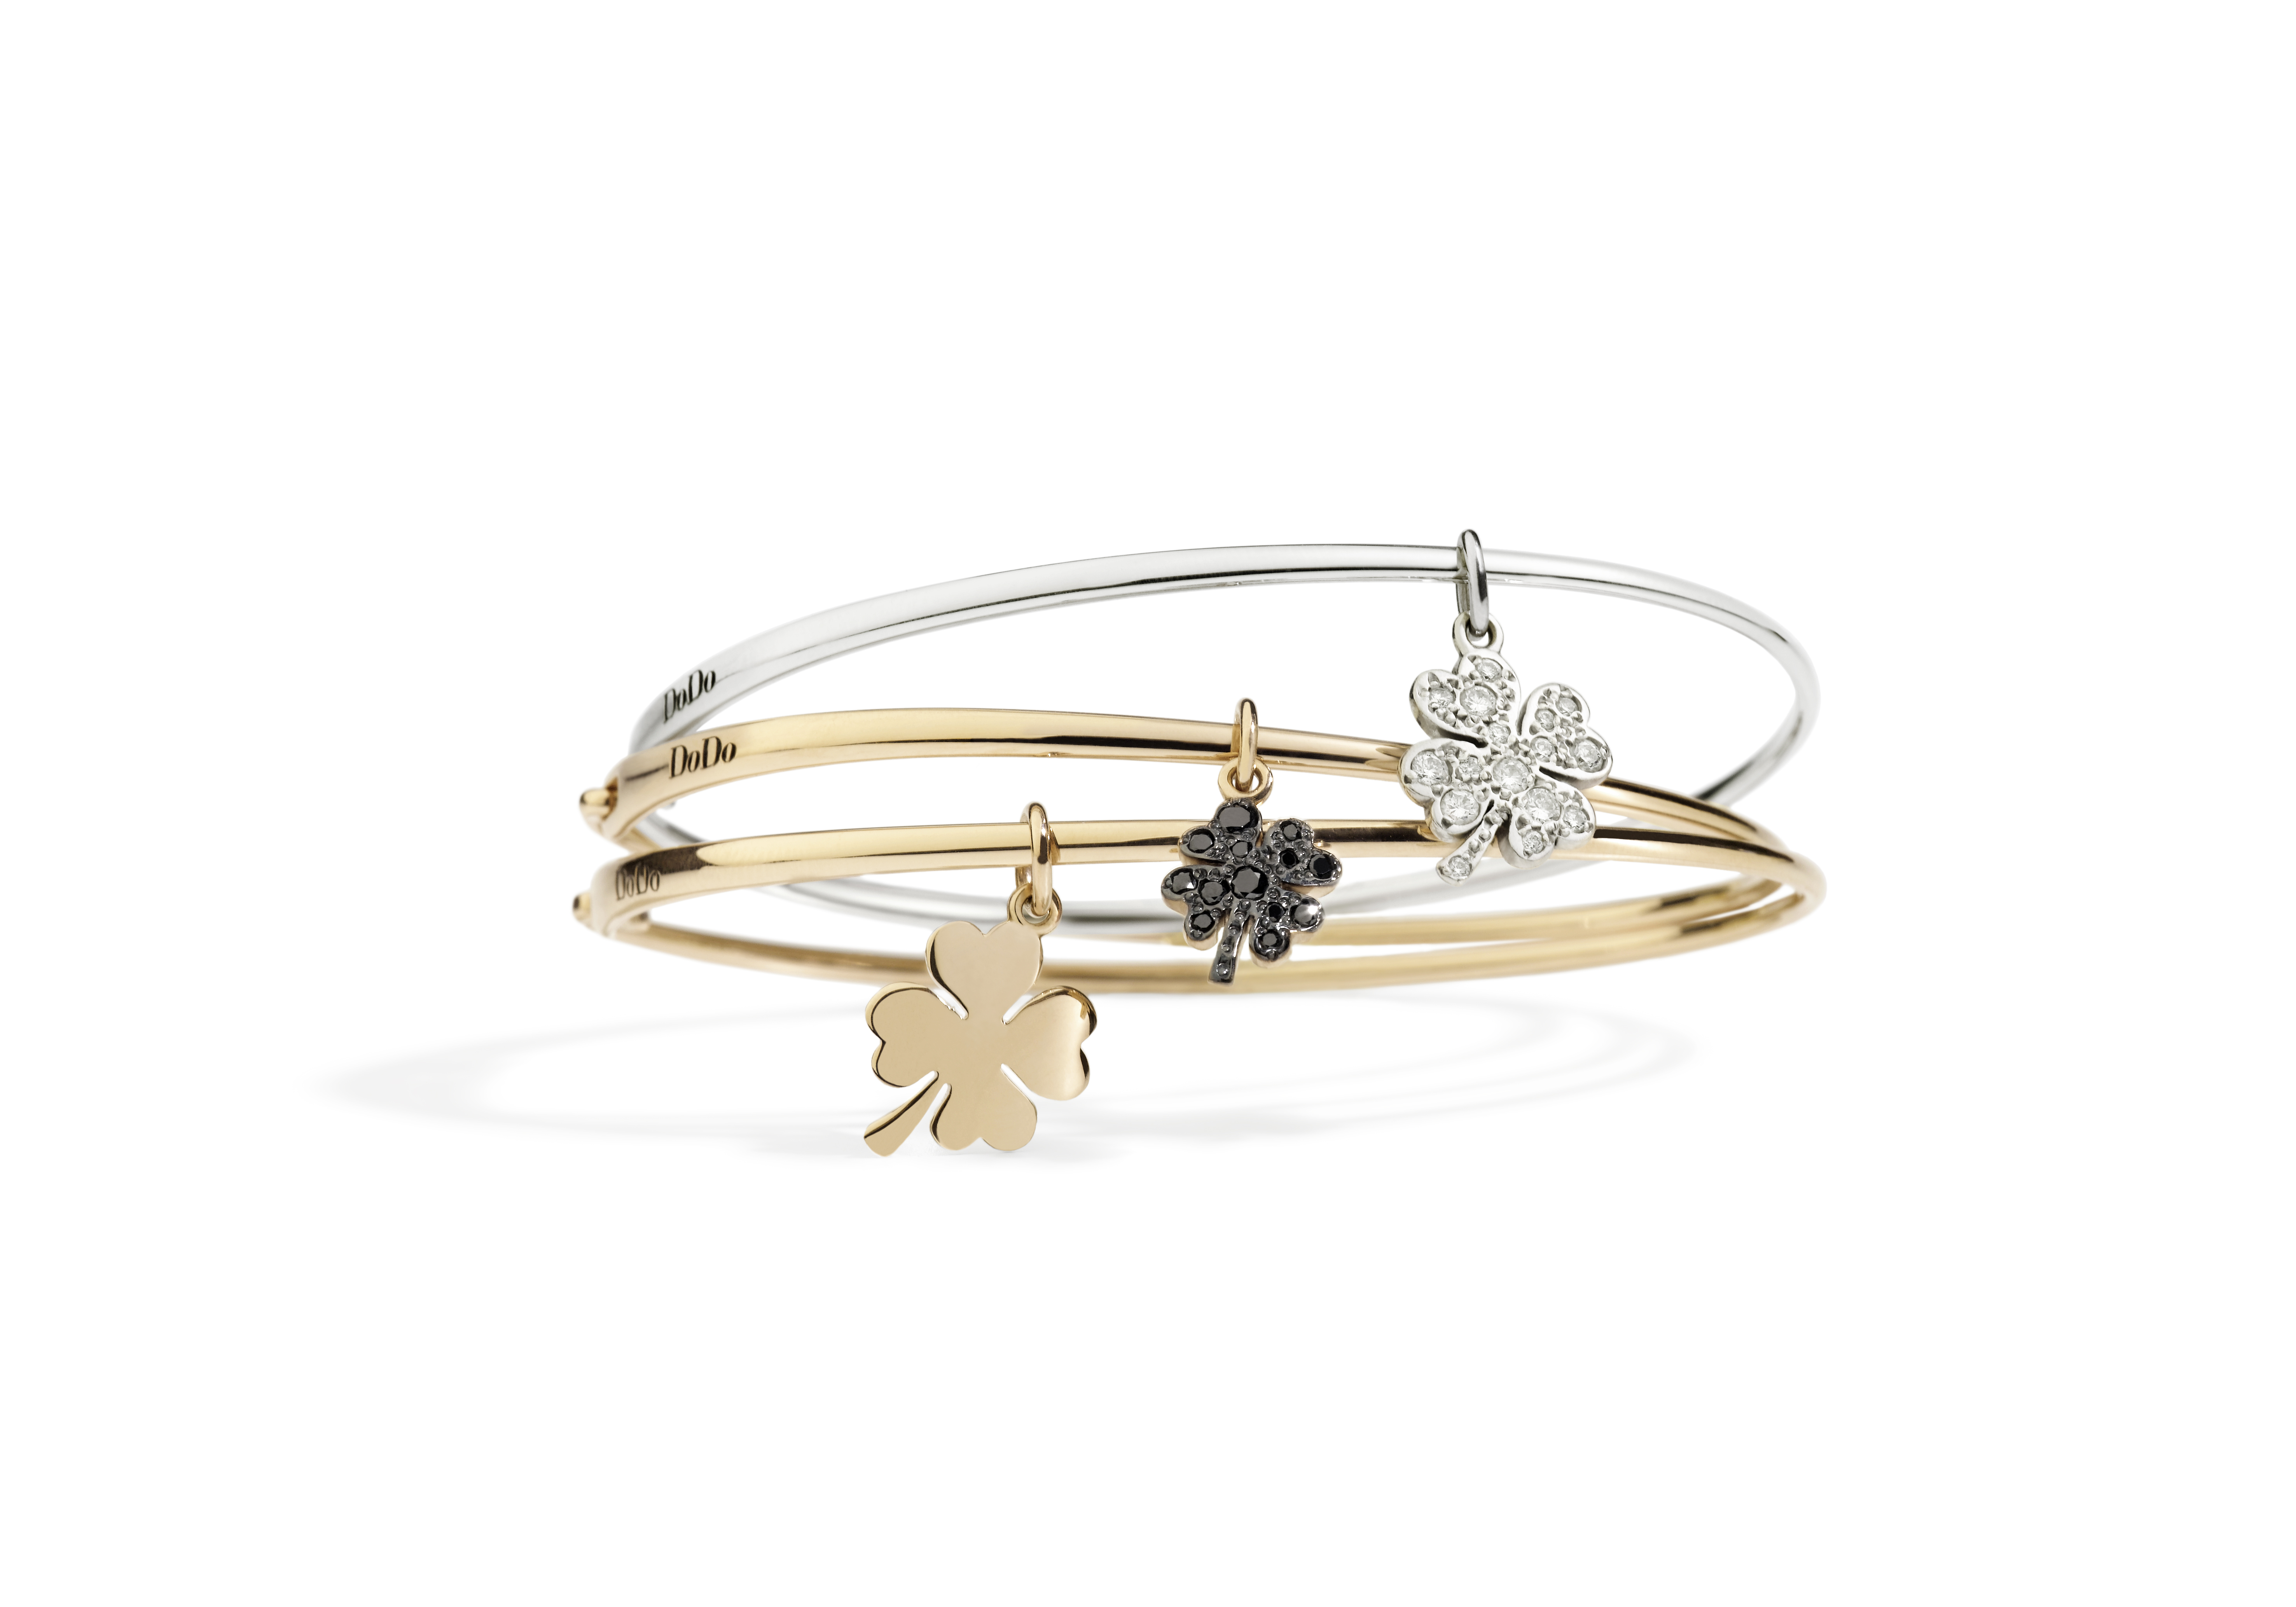 BANGLES WITH FOUR-LEAF CLOVER CHARMS